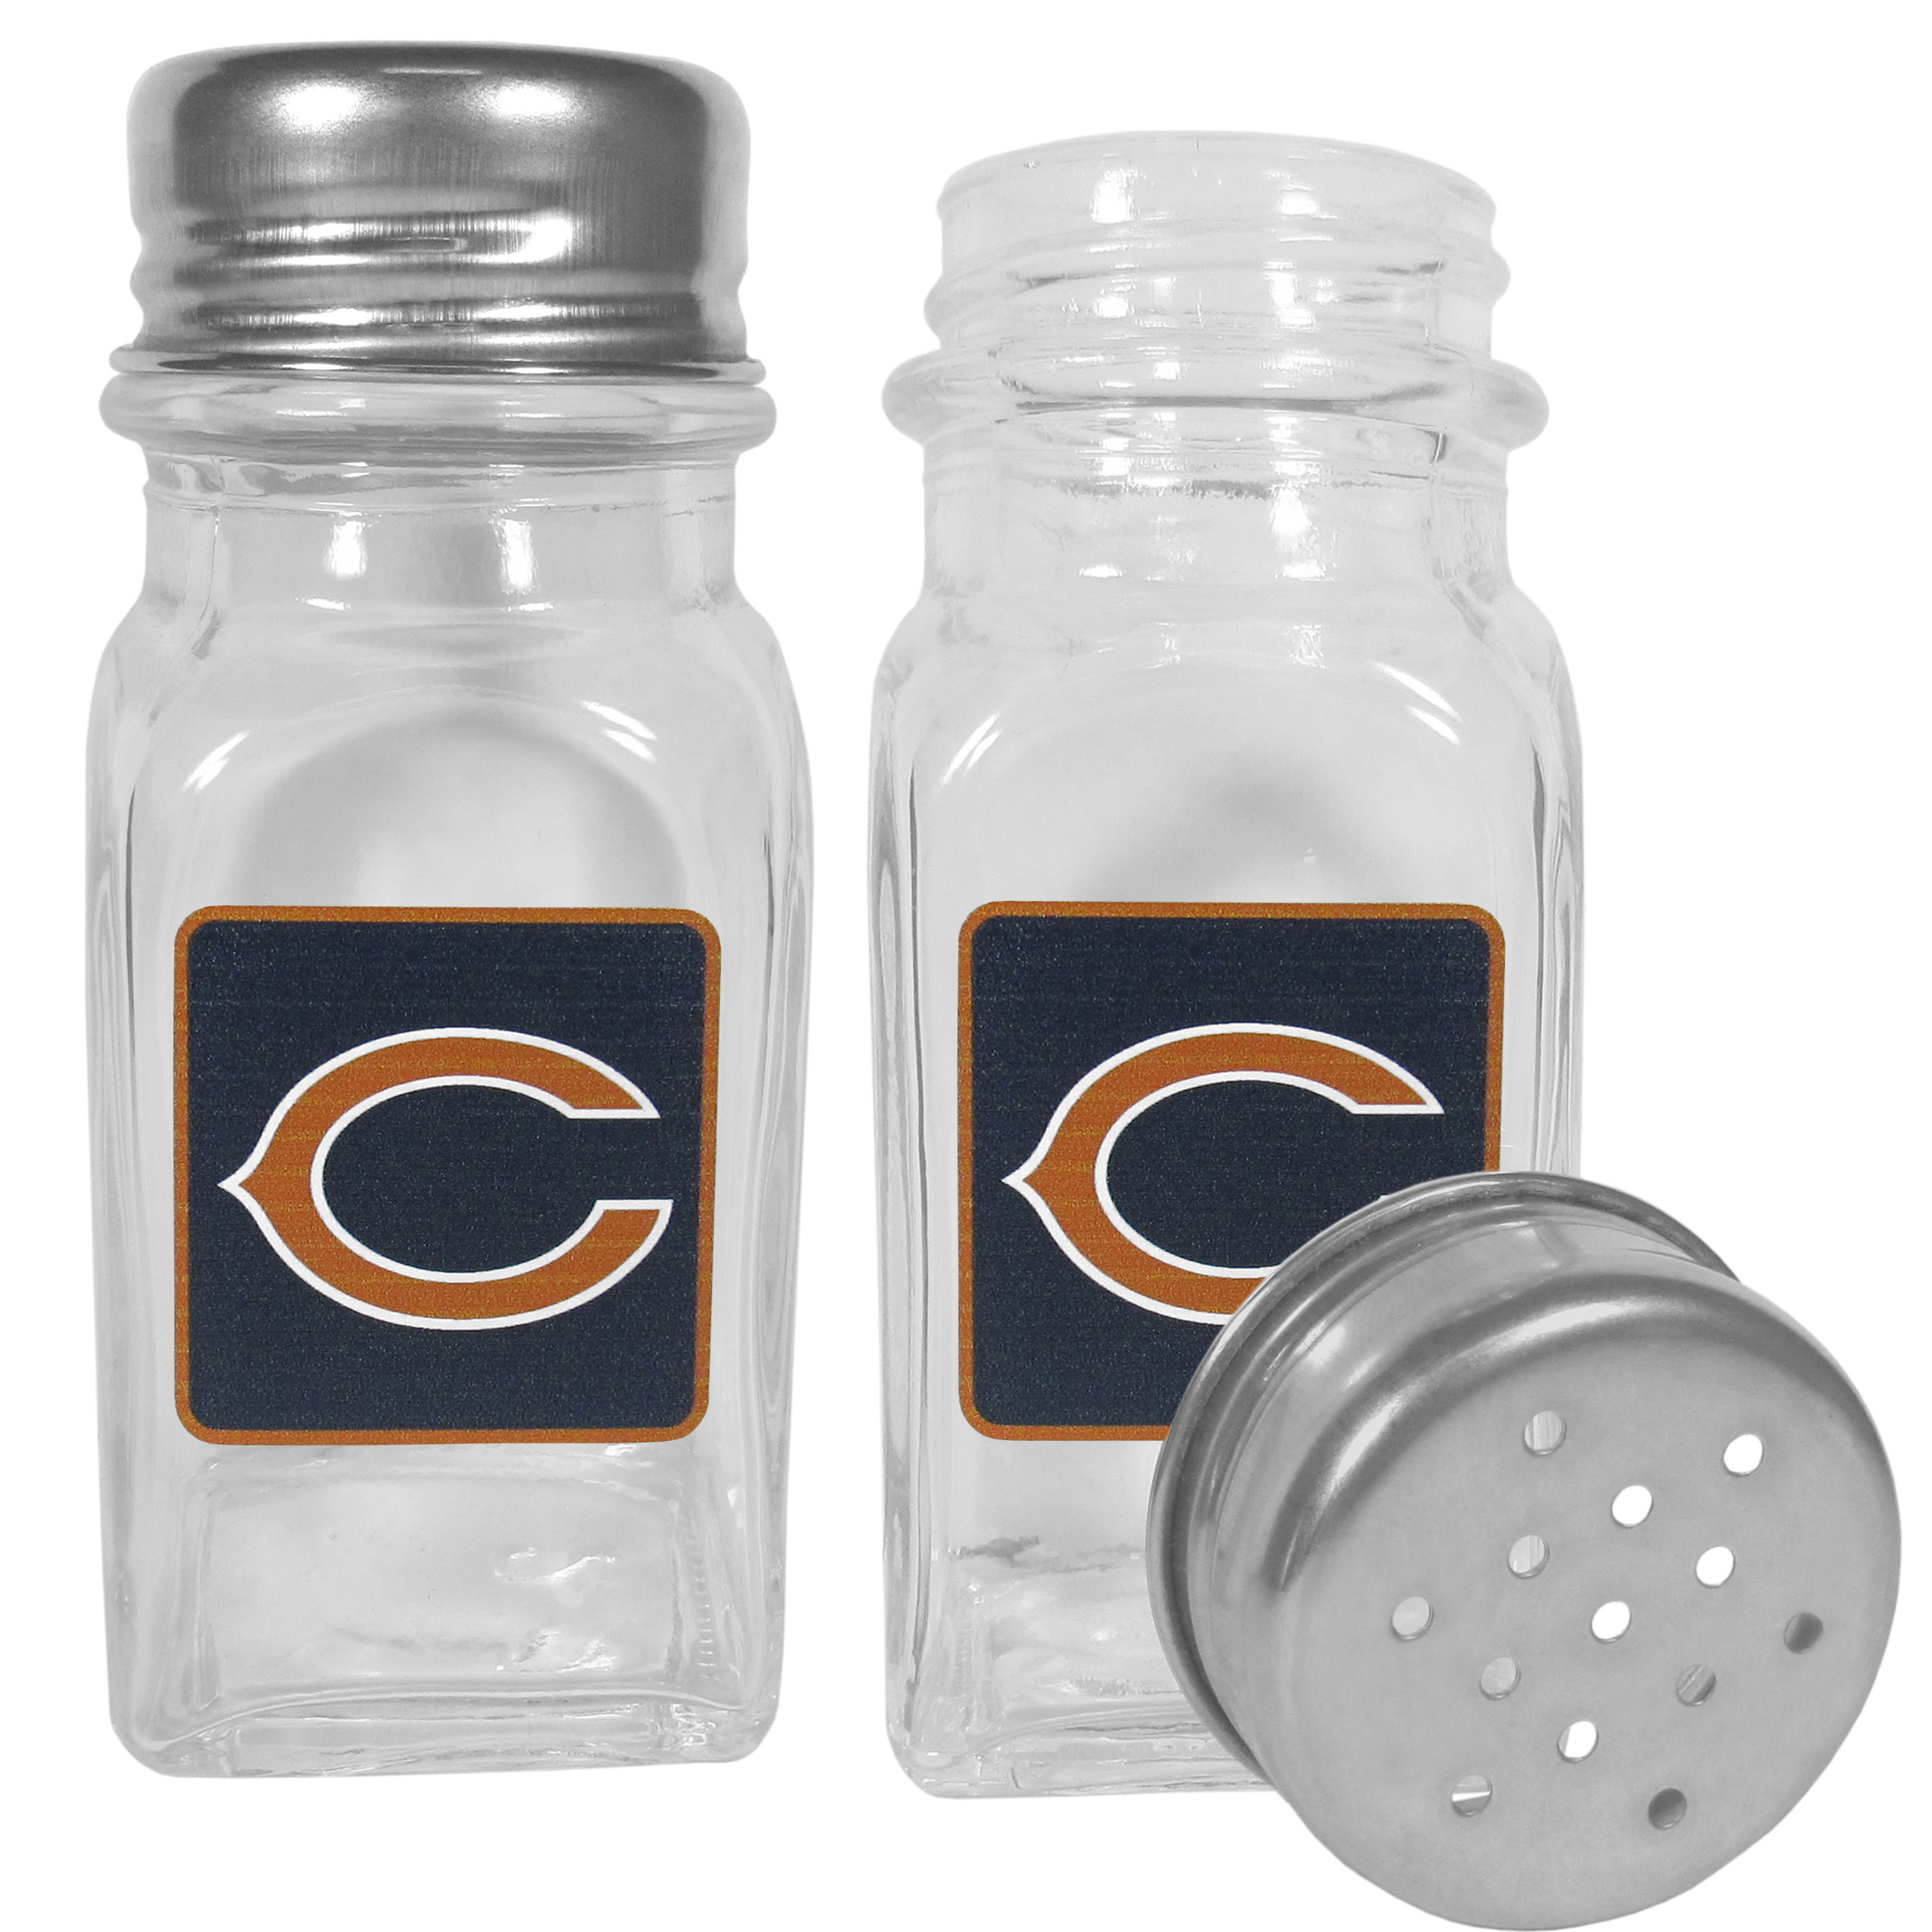 Chicago Bears Graphics Salt and Pepper Shaker - No tailgate party is complete without your Chicago Bears salt & pepper shakers featuring bright team logos. The diner replica salt and pepper shakers are glass with screw top lids. These team shakers are a great grill accessory whether you are barbecuing on the patio, picnicing or having a game day party.